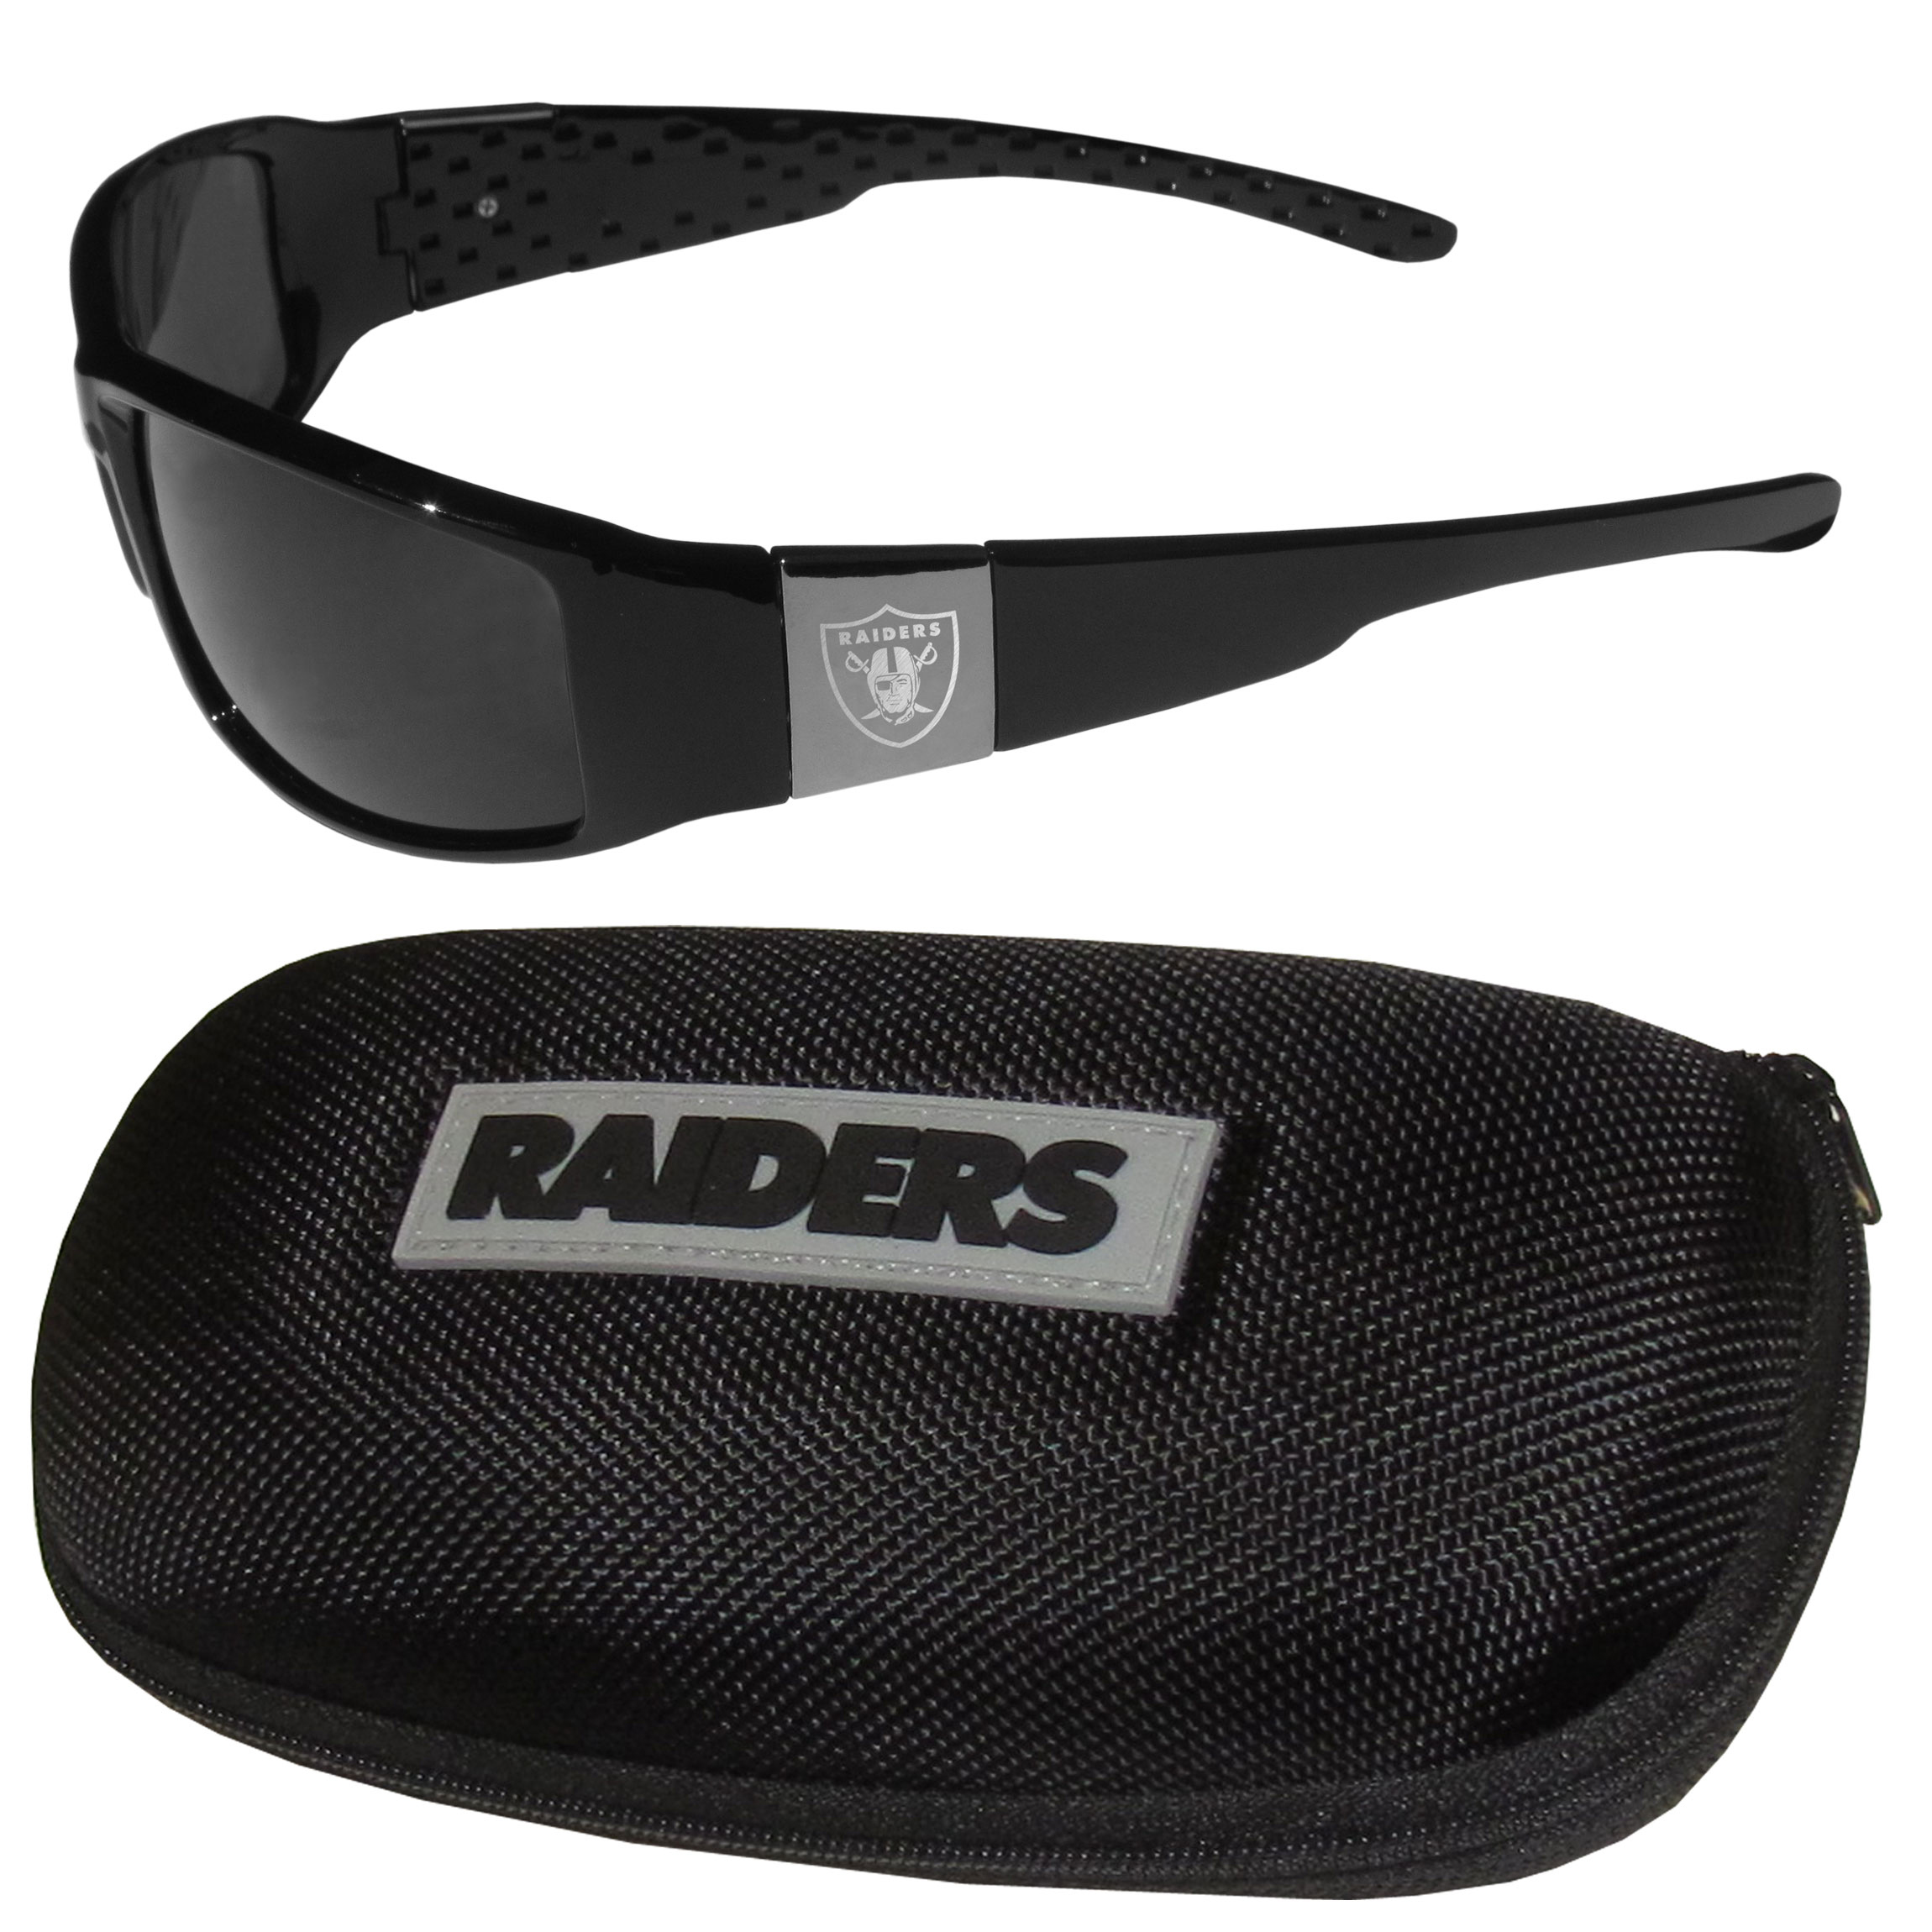 Oakland Raiders Chrome Wrap Sunglasses and Zippered Carrying Case - This set includes our sleek and stylish Oakland Raiders chrome wrap sunglasses and our hard shell, zippered carrying case. The sunglasses feature etched team logos on each arm and 100% UVA/UVB protection. The case features a large and colorful team emblem.